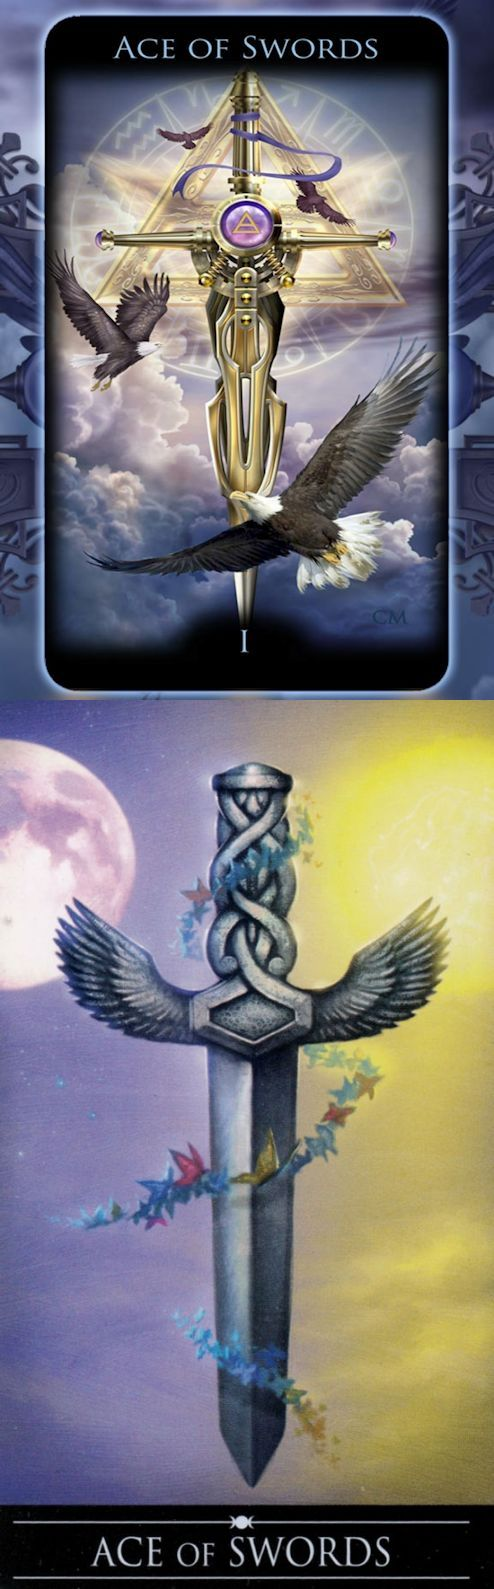 Ace of Swords: potential for immense power and success and brutality (reverse). Legacy Tarot deck and Silver Witchcraft Tarot deck: free tarot reading online accurate lotus, physic reading online and how to do tarot cards. The best gothic decor and tarot decks vintage. #tarotcardshowtoread